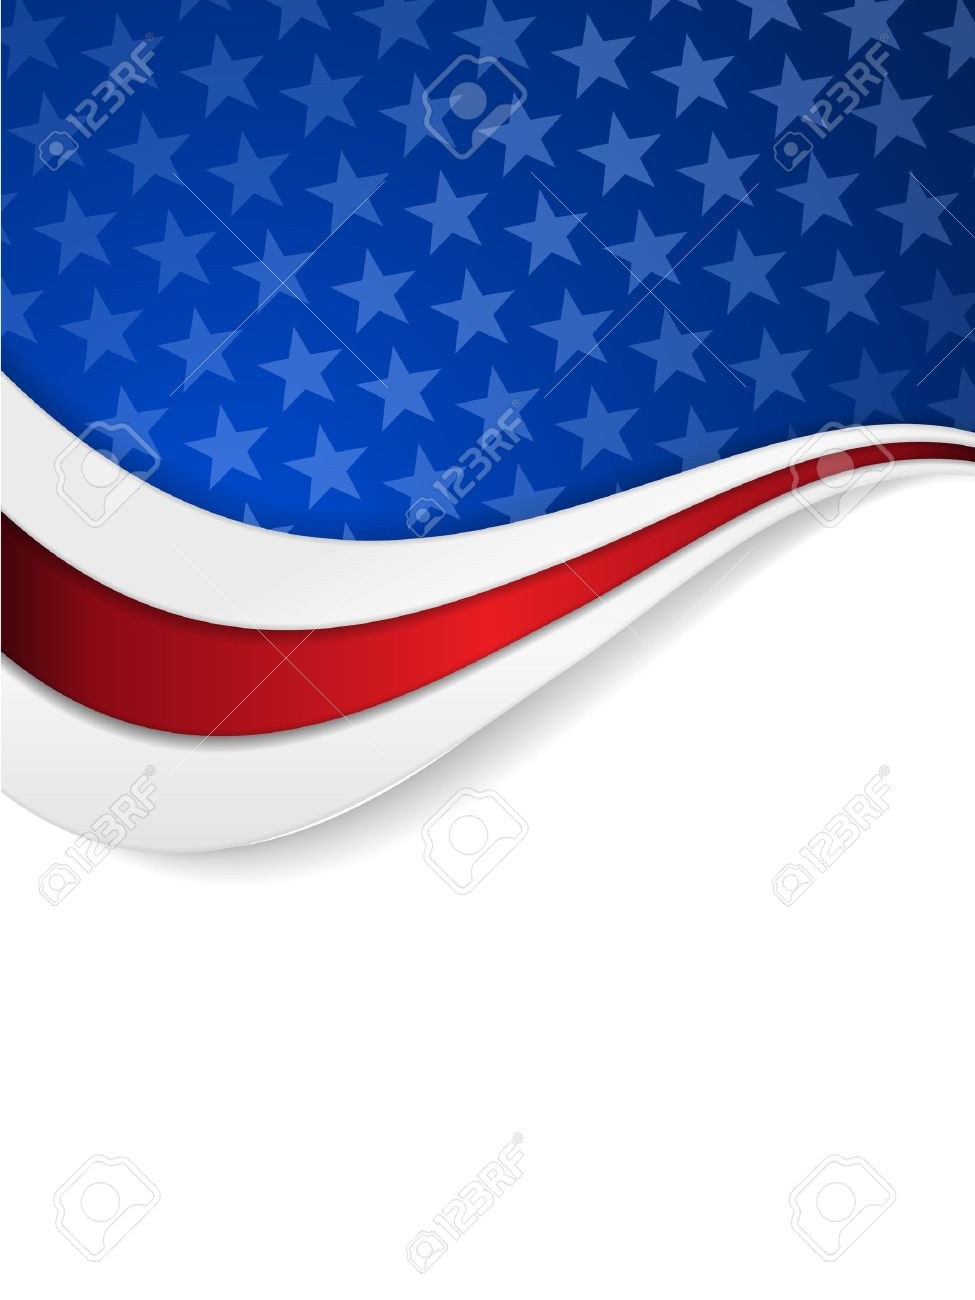 Abstract background with wavy pattern and space for your text.Stars on dark blue background with wavy stripes in red and white make it a great backdrop for USA themes, like Independent Day, etc. Stock Vector - 19060621